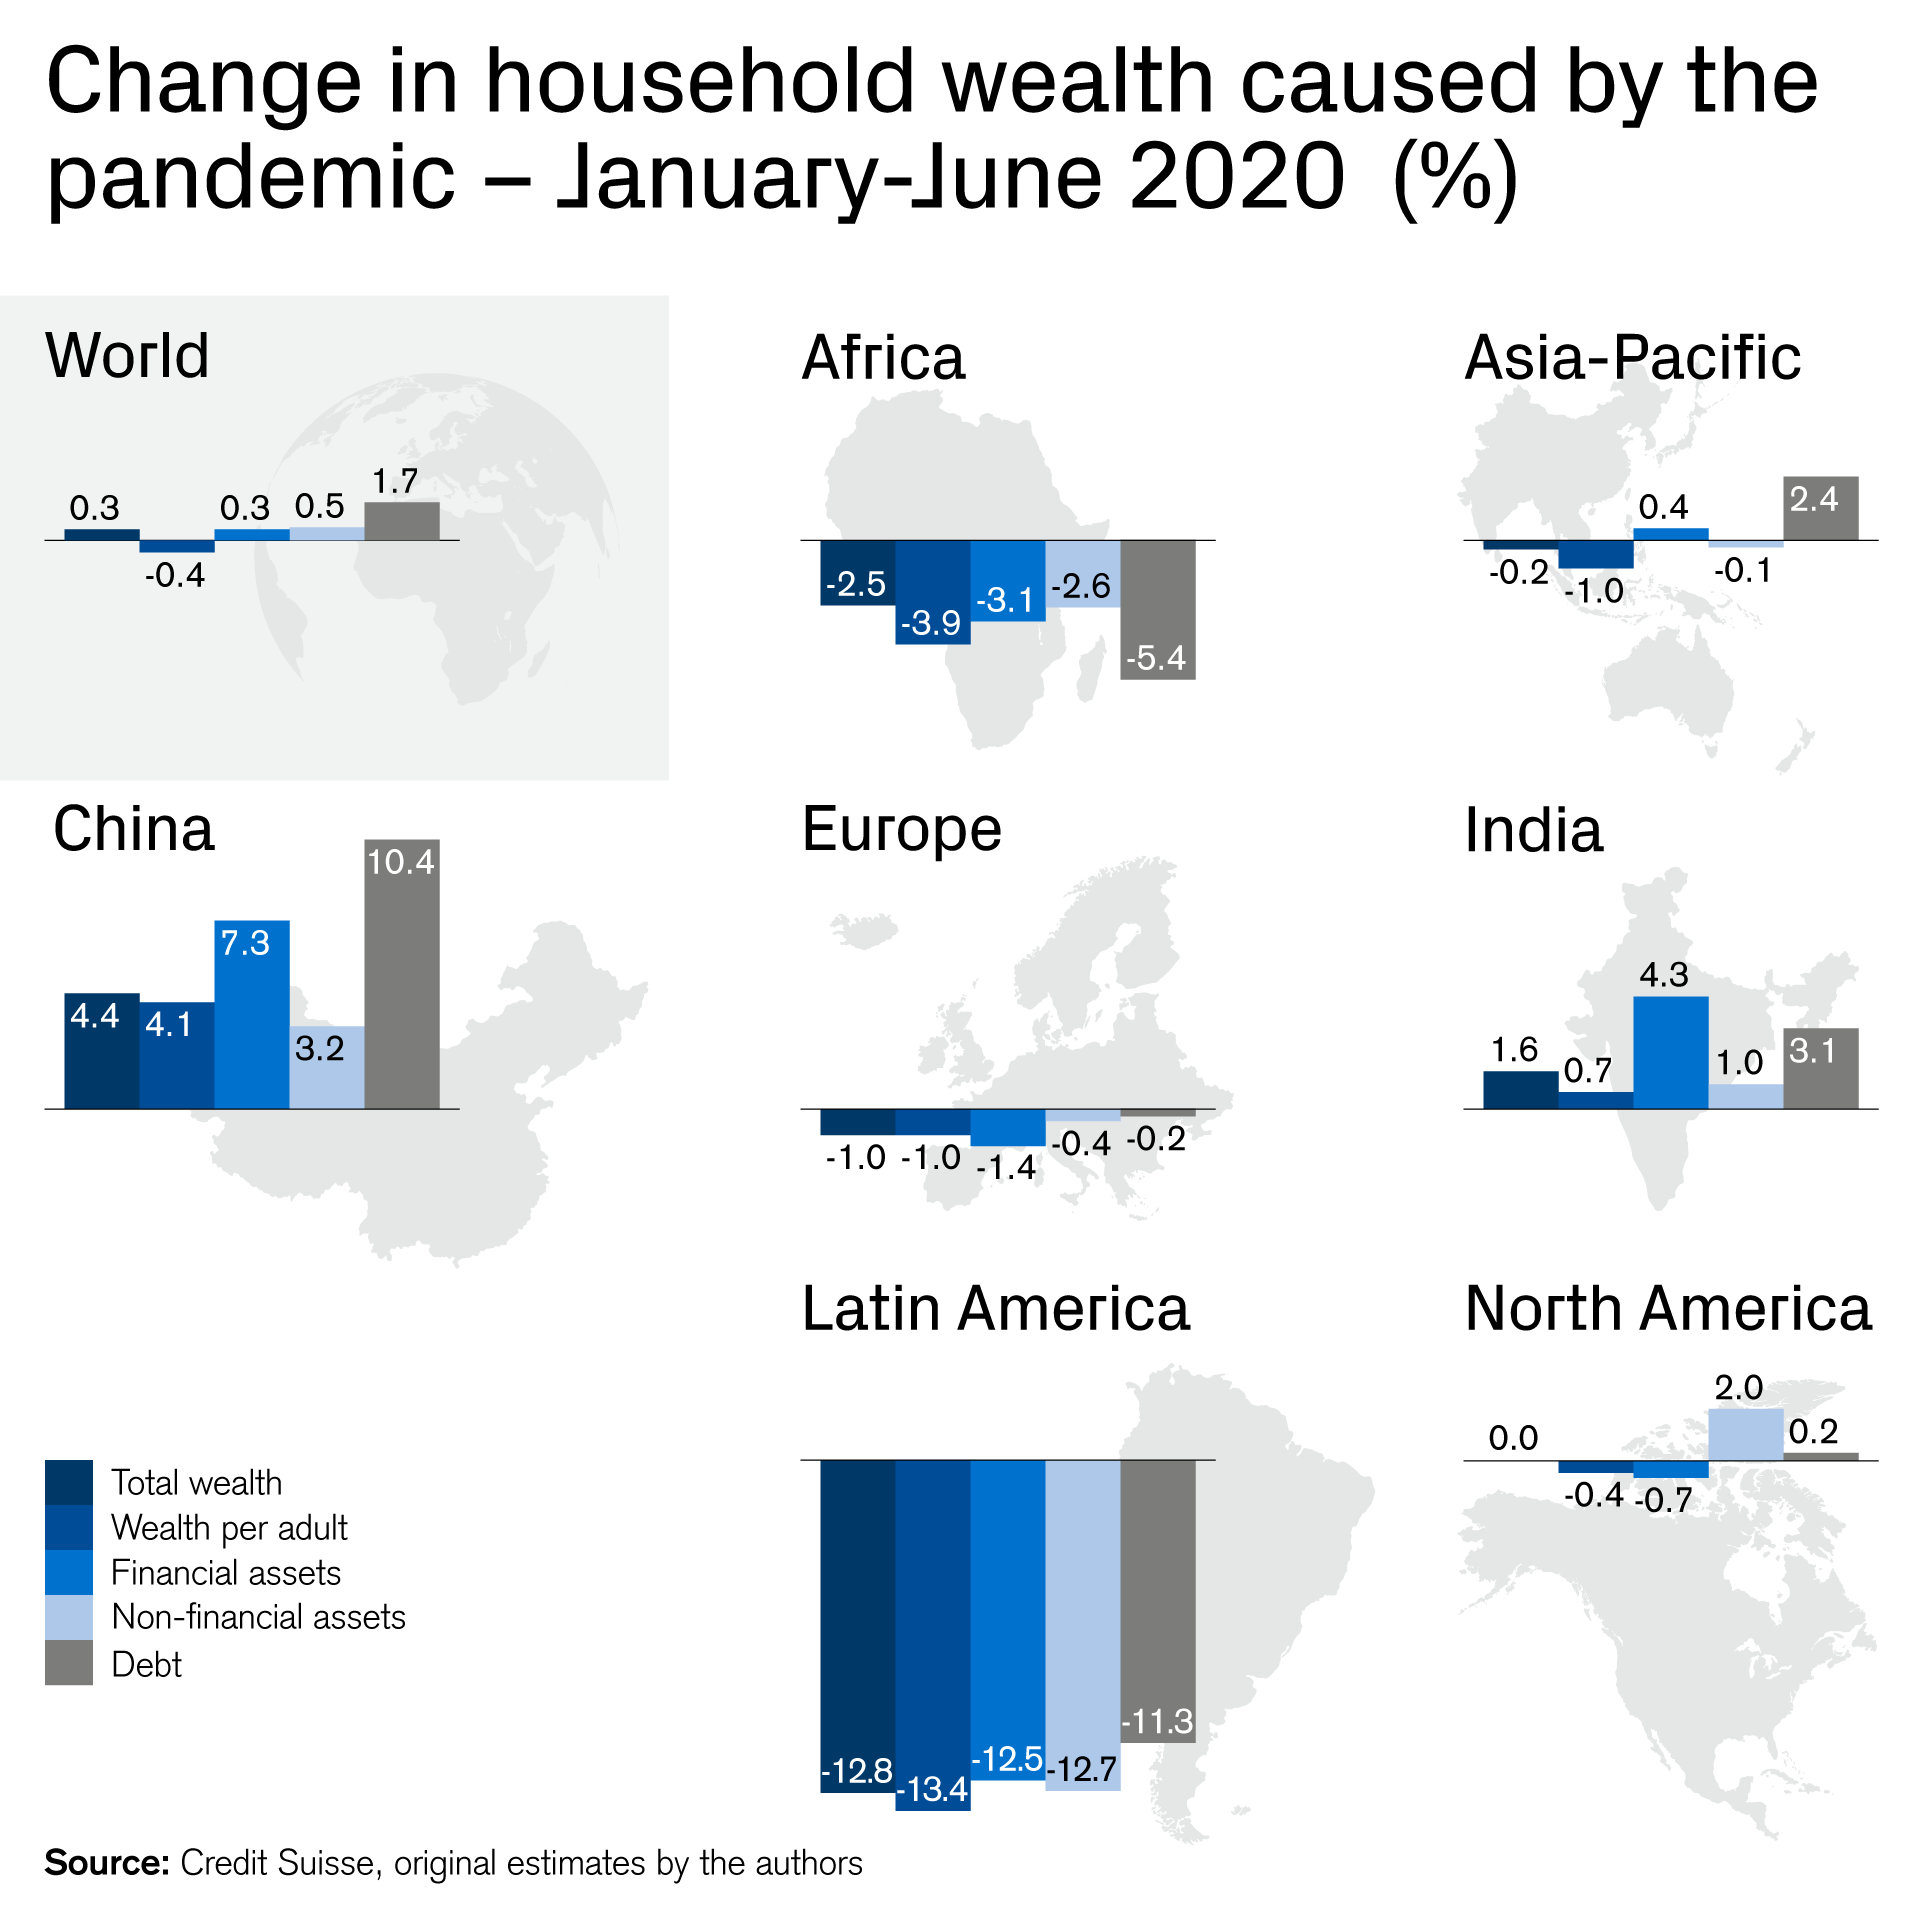 An infographic presenting changes in household wealth in 2020 caused by the COVID pandemic